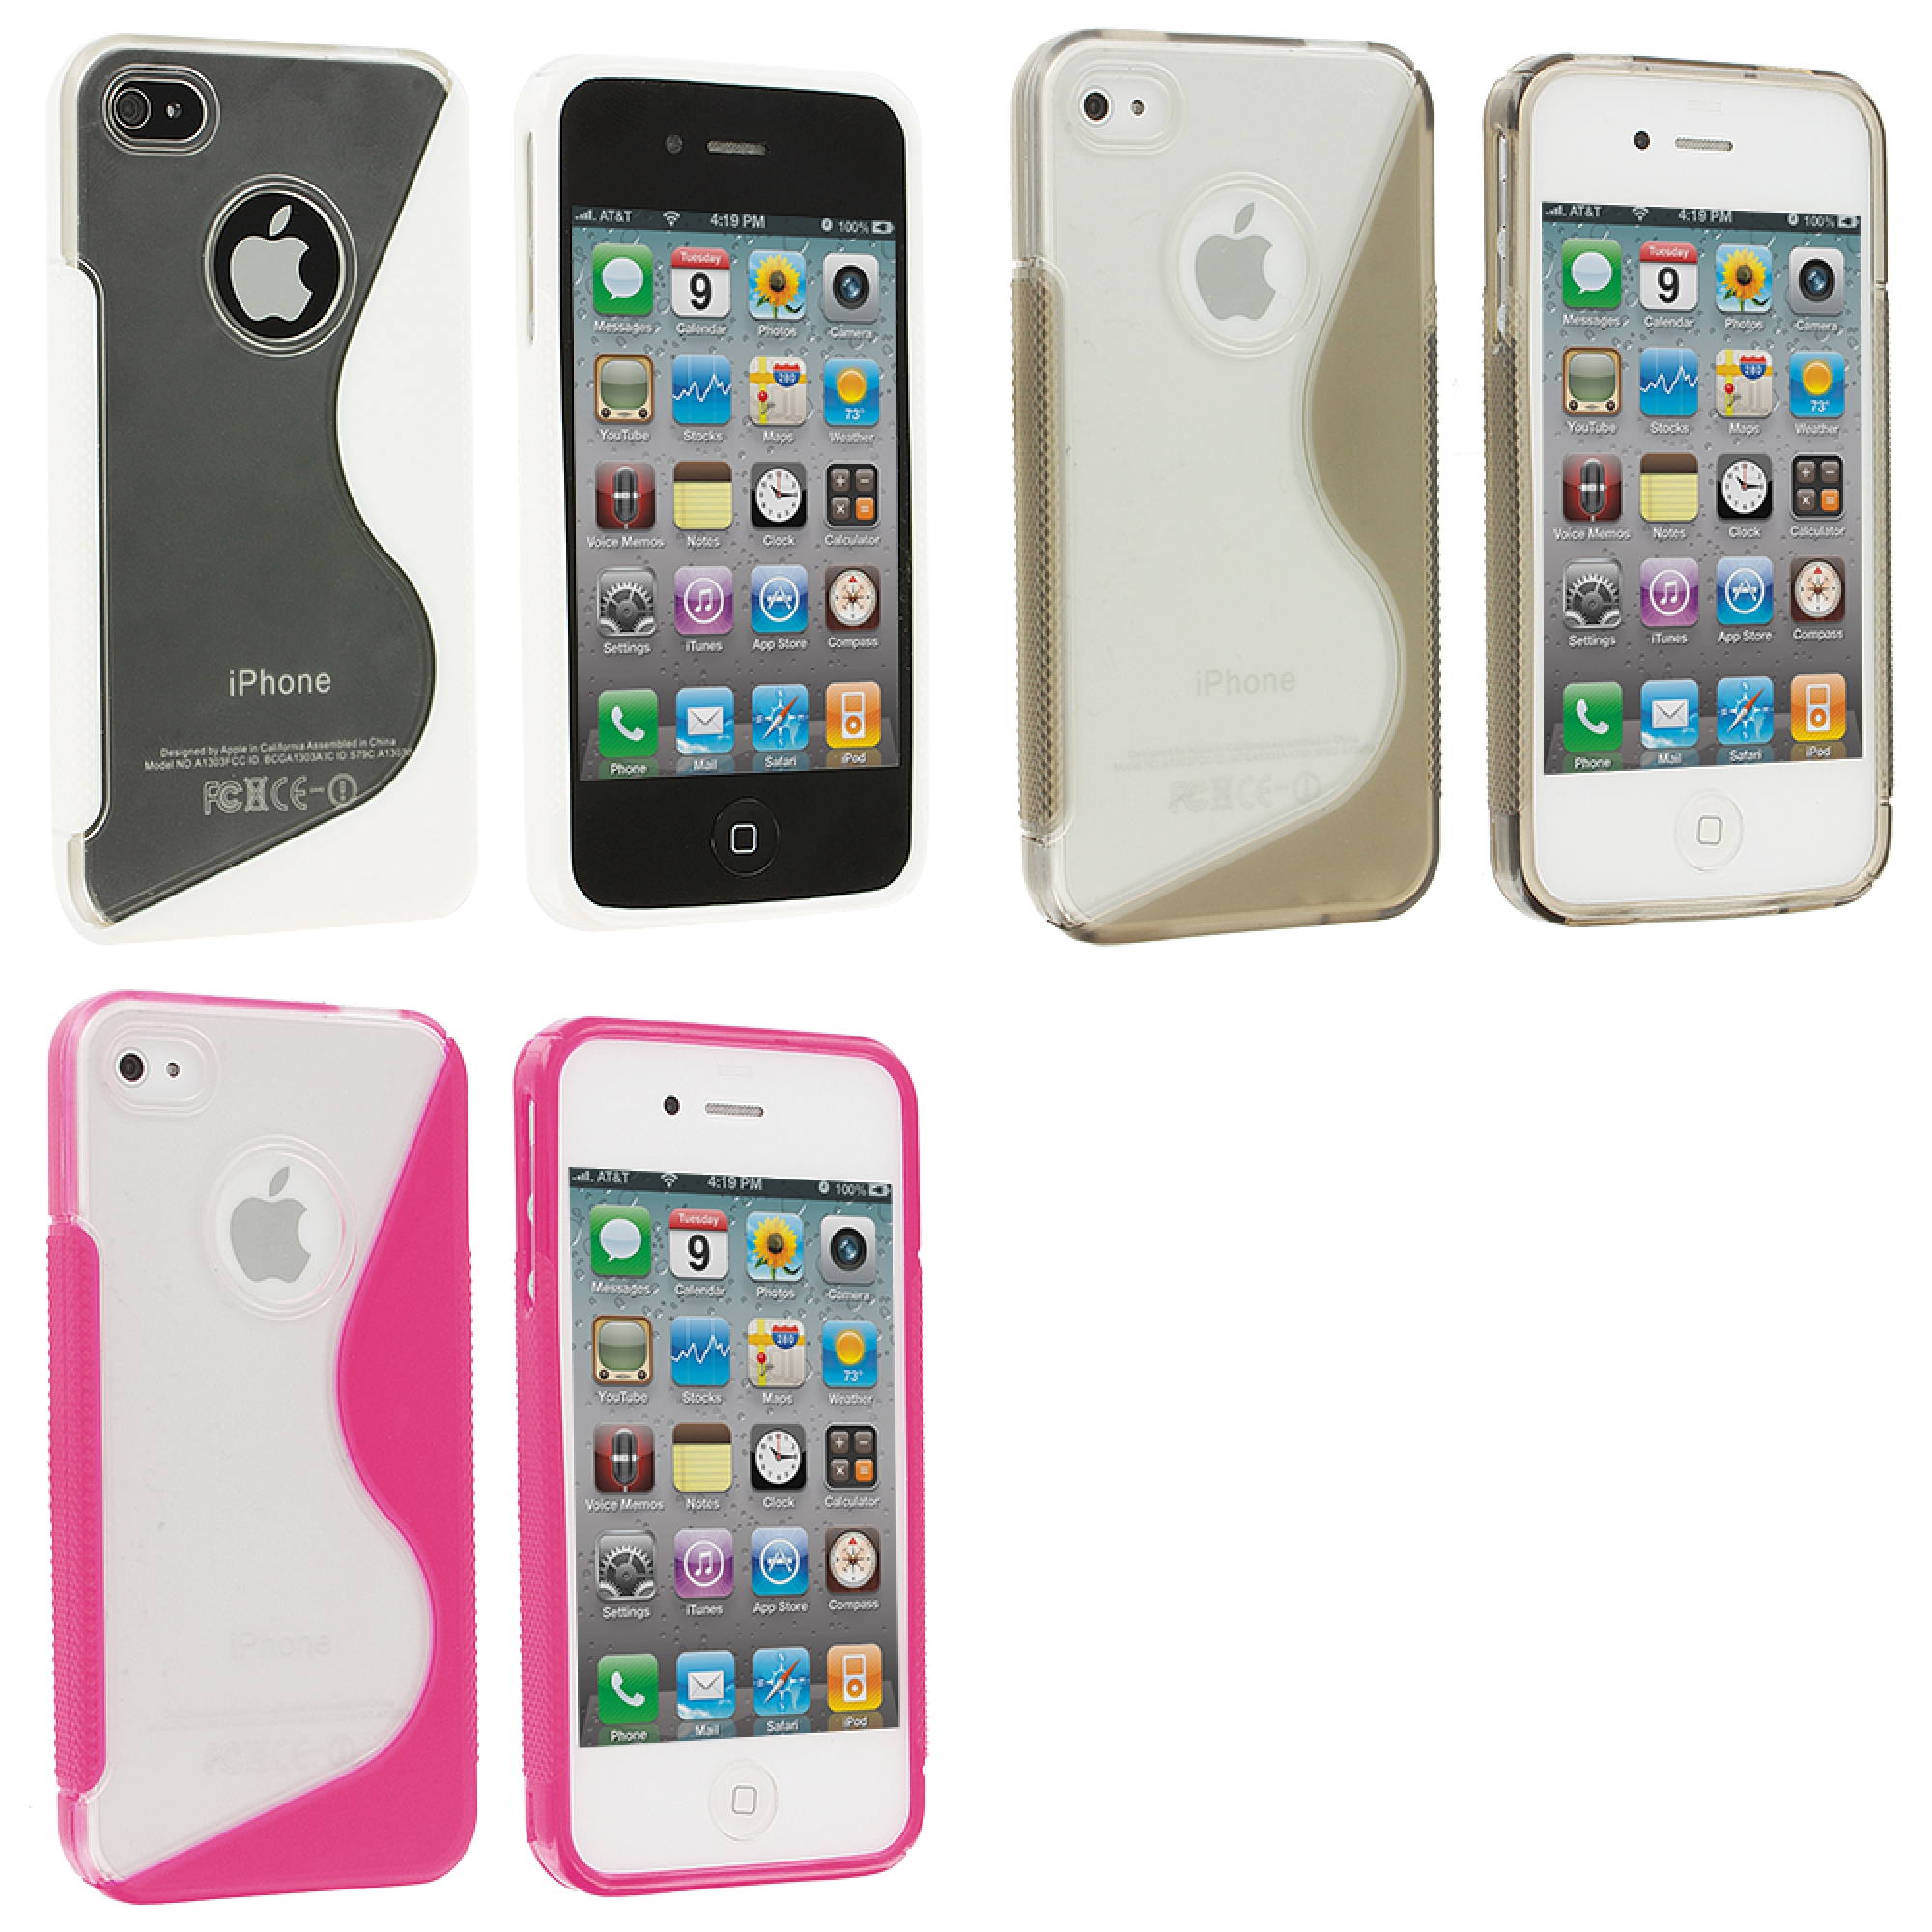 Apple iPhone 4 / 4S 3 in 1 Combo Bundle Pack - Clear / White S-Line TPU Rubber Skin Case Cover